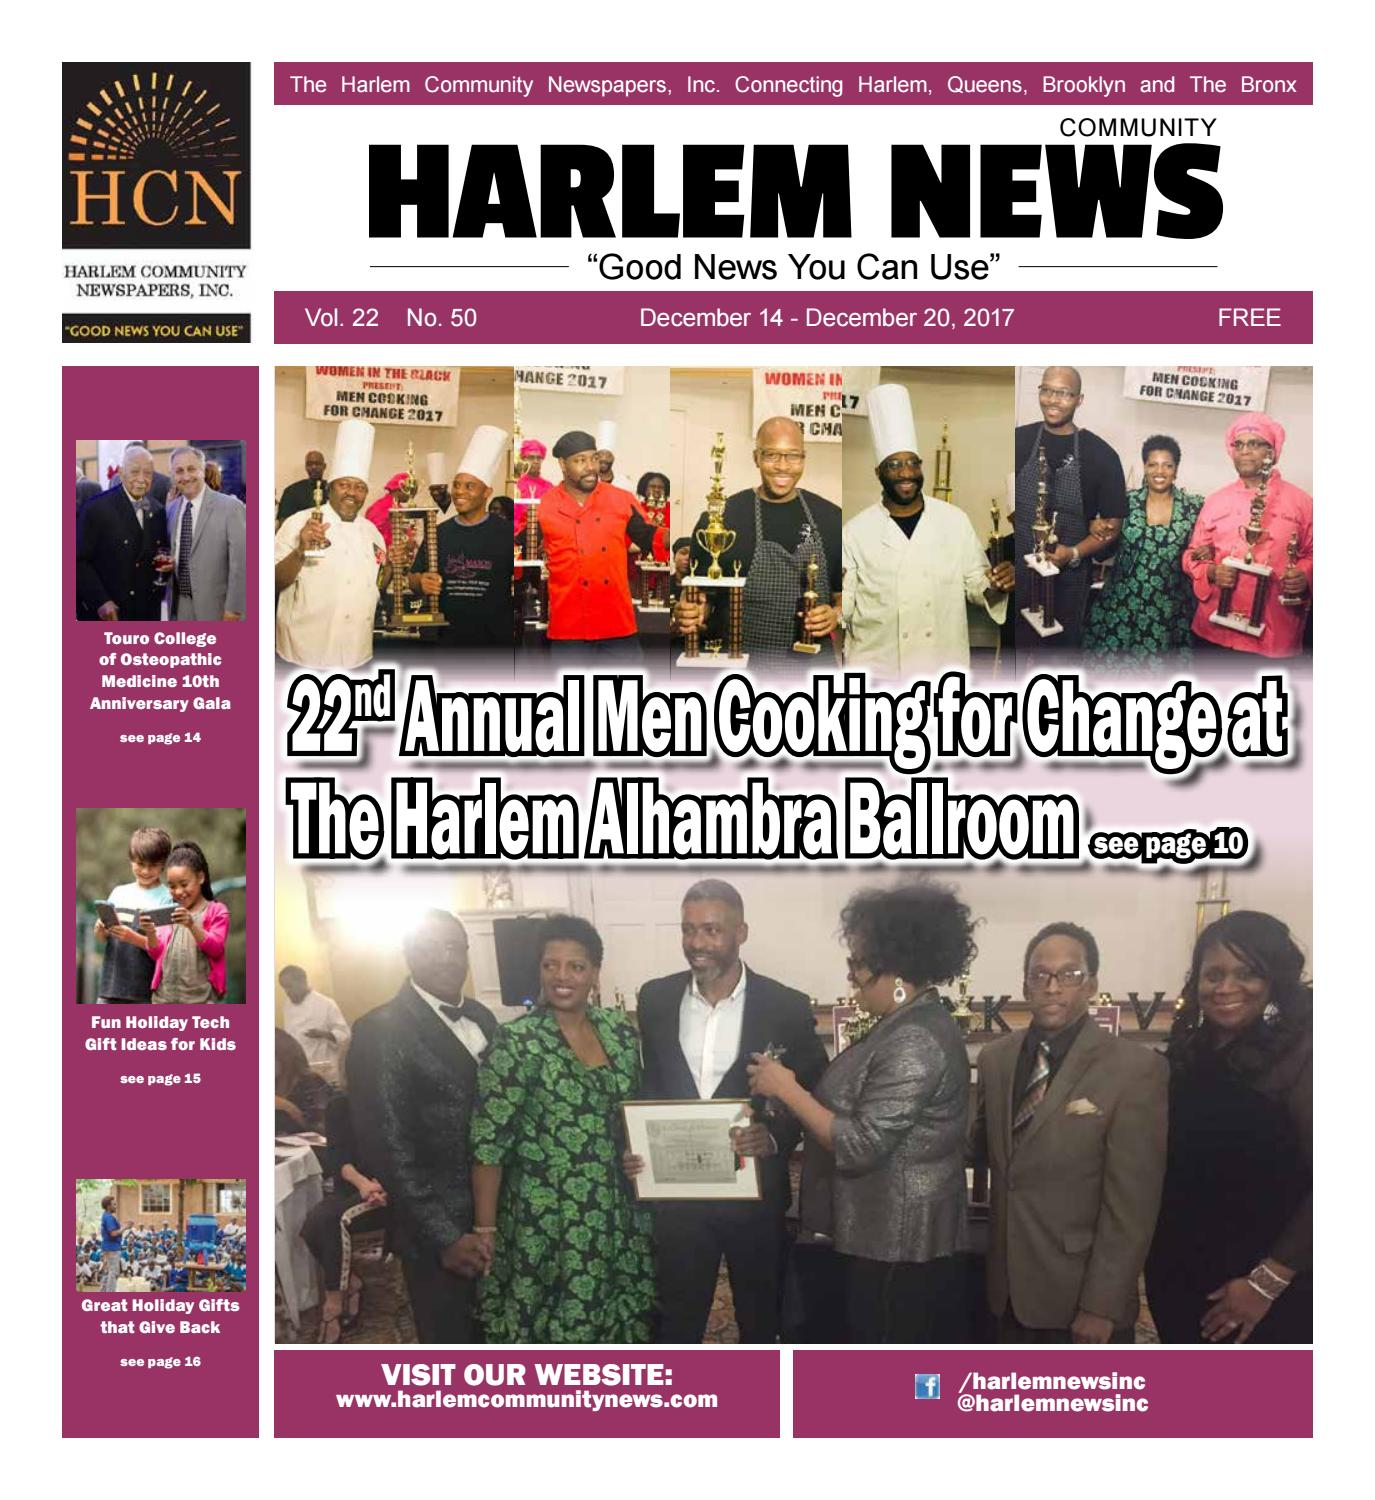 Harlem munity Newspapers